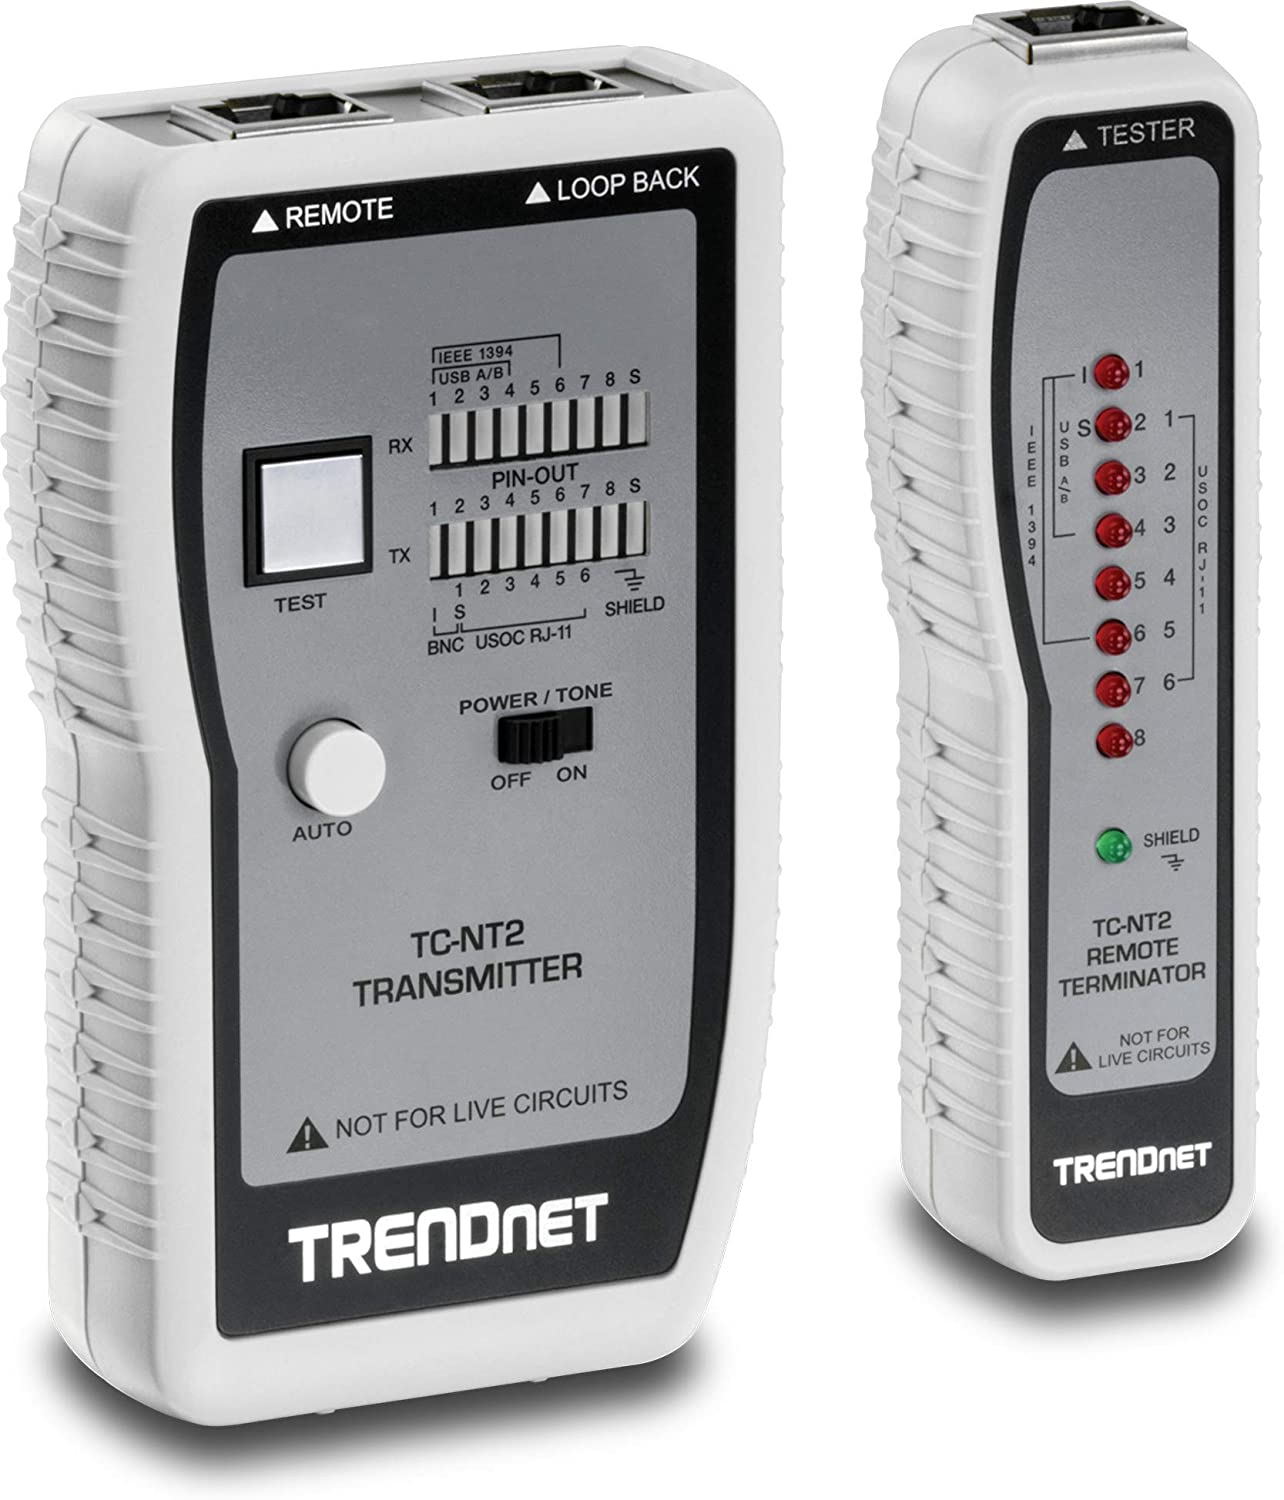 B0000AZK08 TRENDnet Network Cable Tester, Tests Ethernet/USB & BNC Cables, Accurately Test Pin Configurations up to 300M (984 ft), TC-NT2 71yb5VGf92L